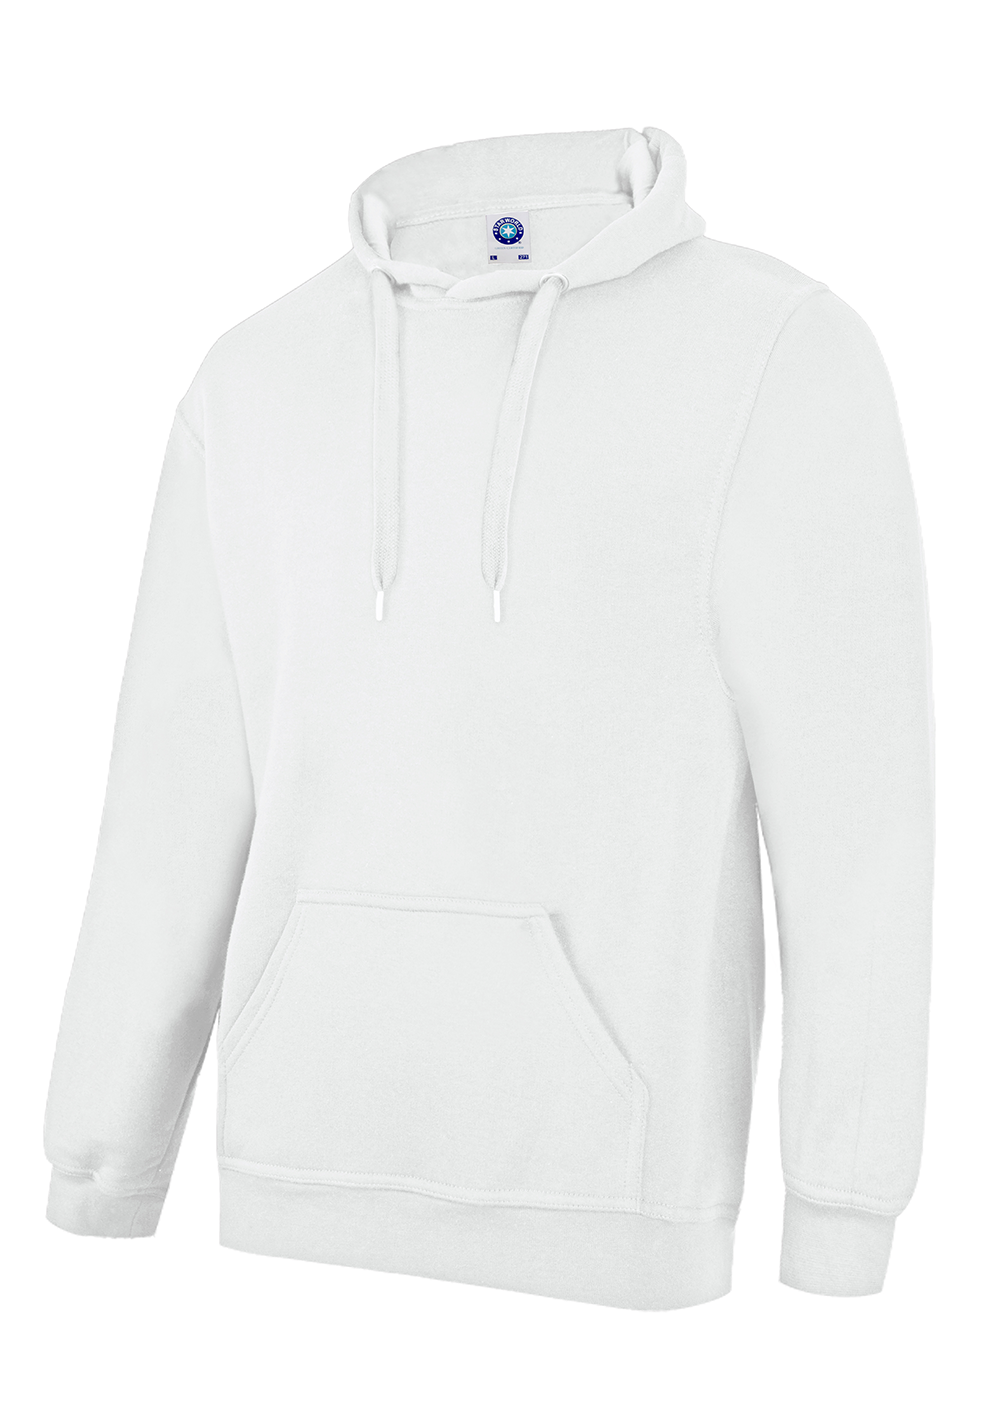 SW271-03-White.png